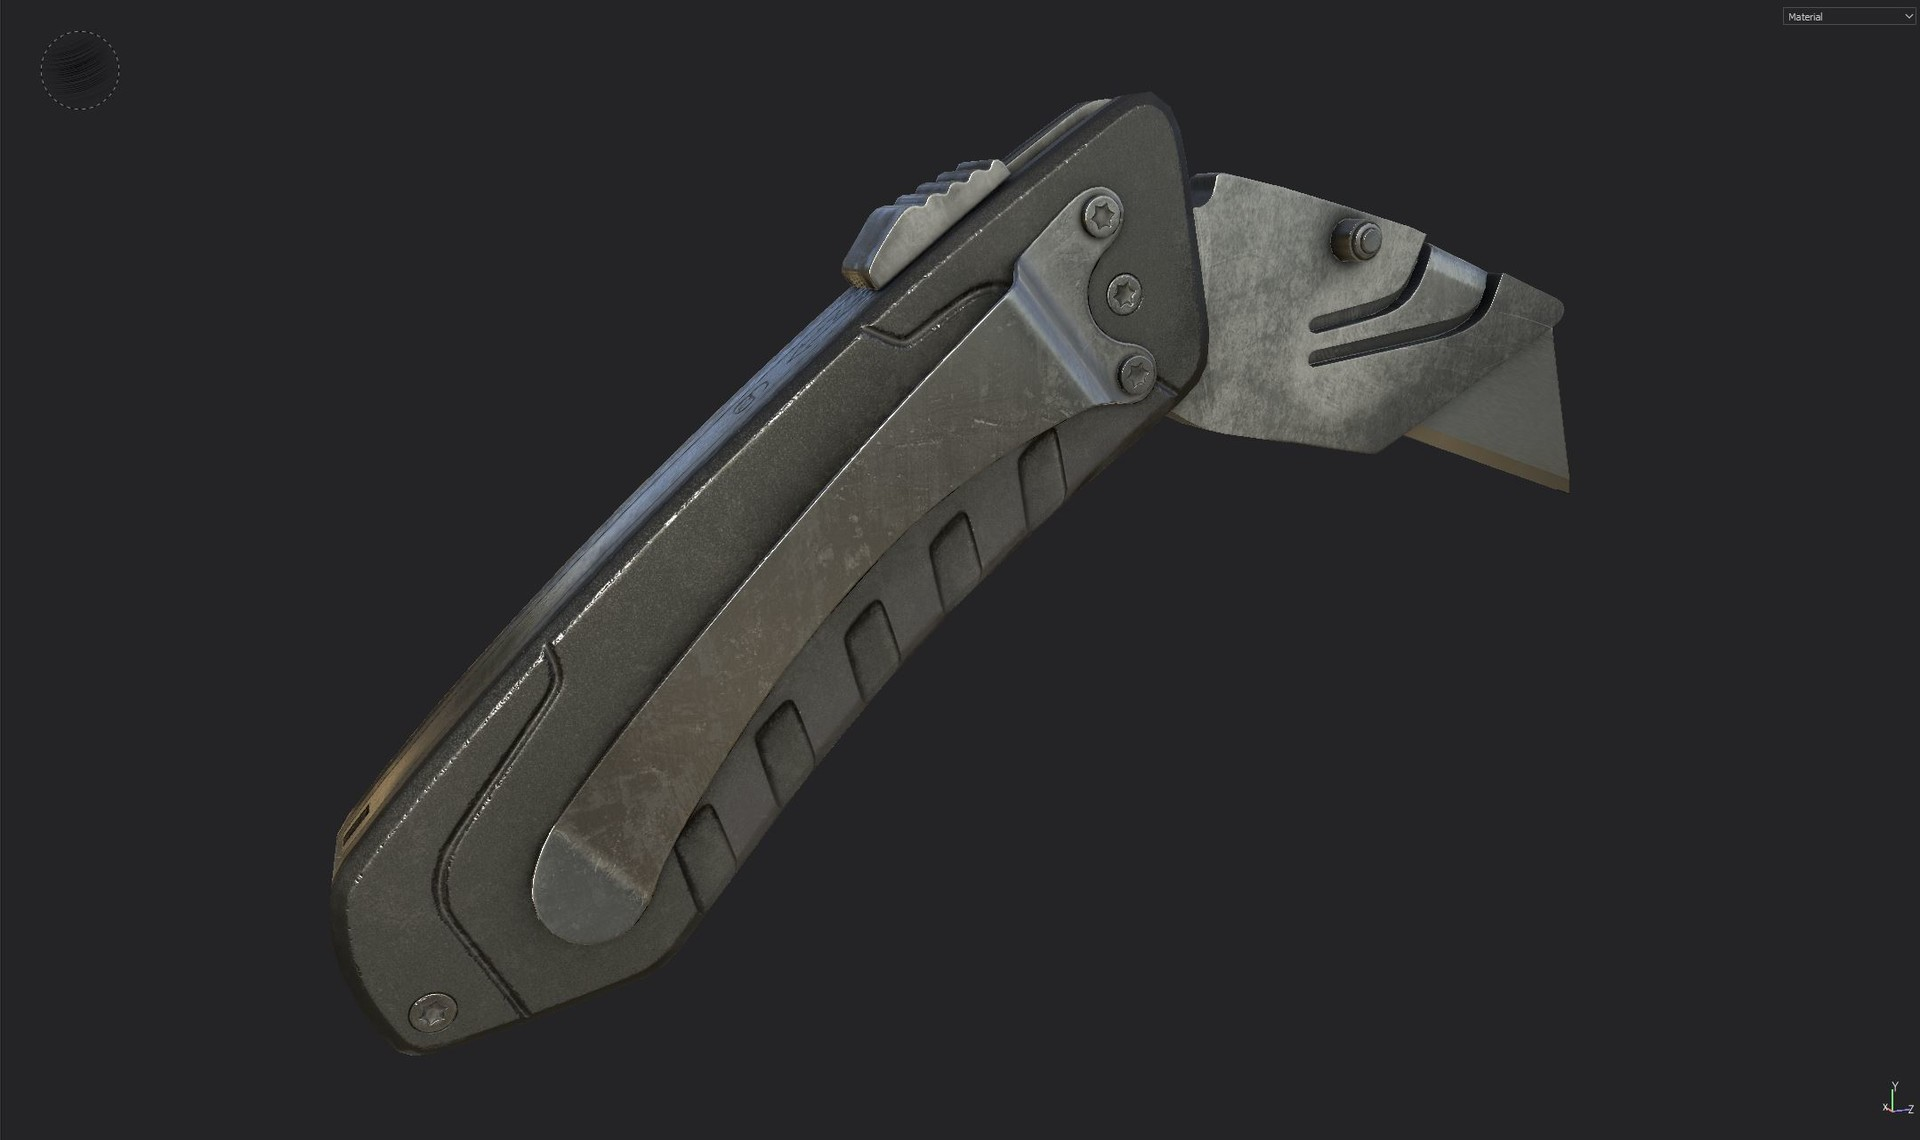 Box Cutter - Low poly textured 3